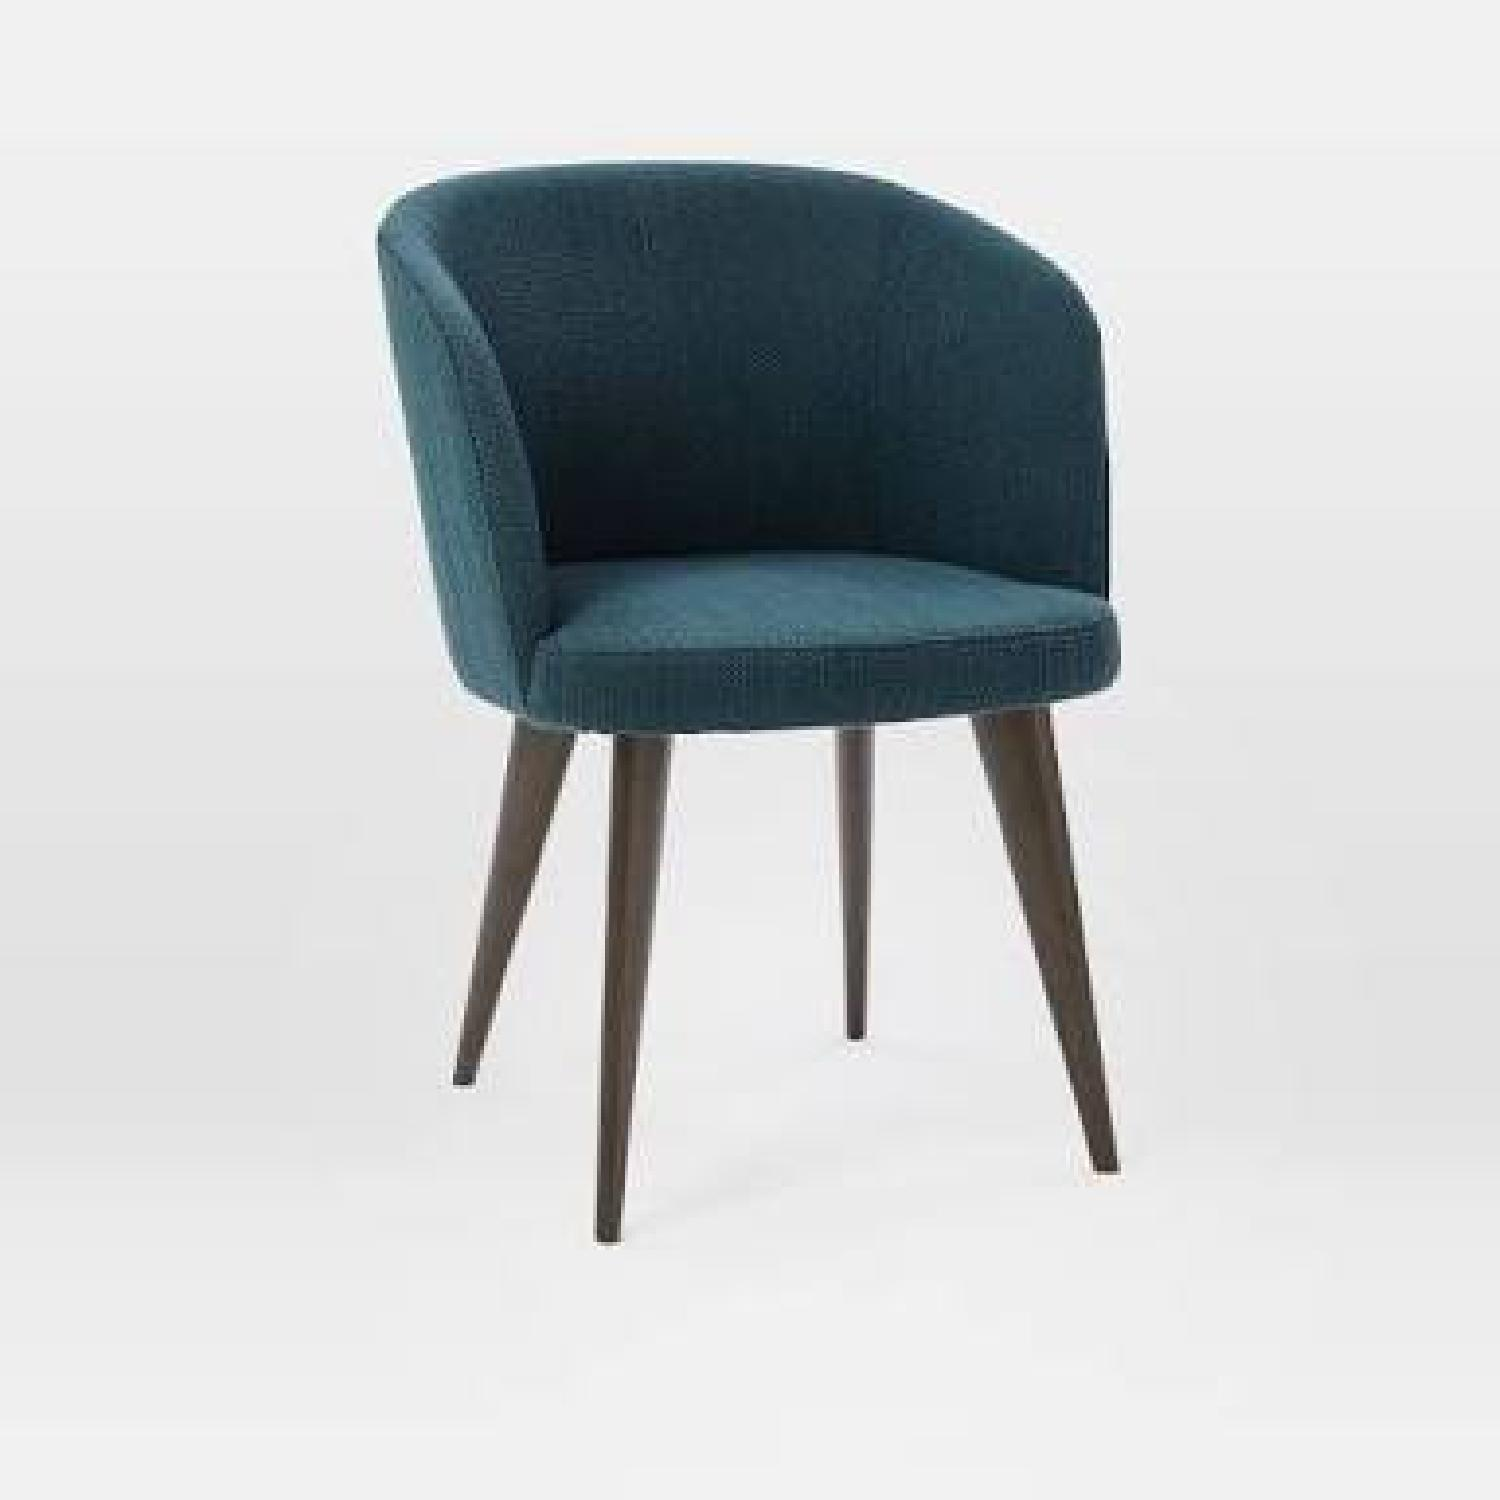 West Elm- Abrazo Arm Chair - image-10